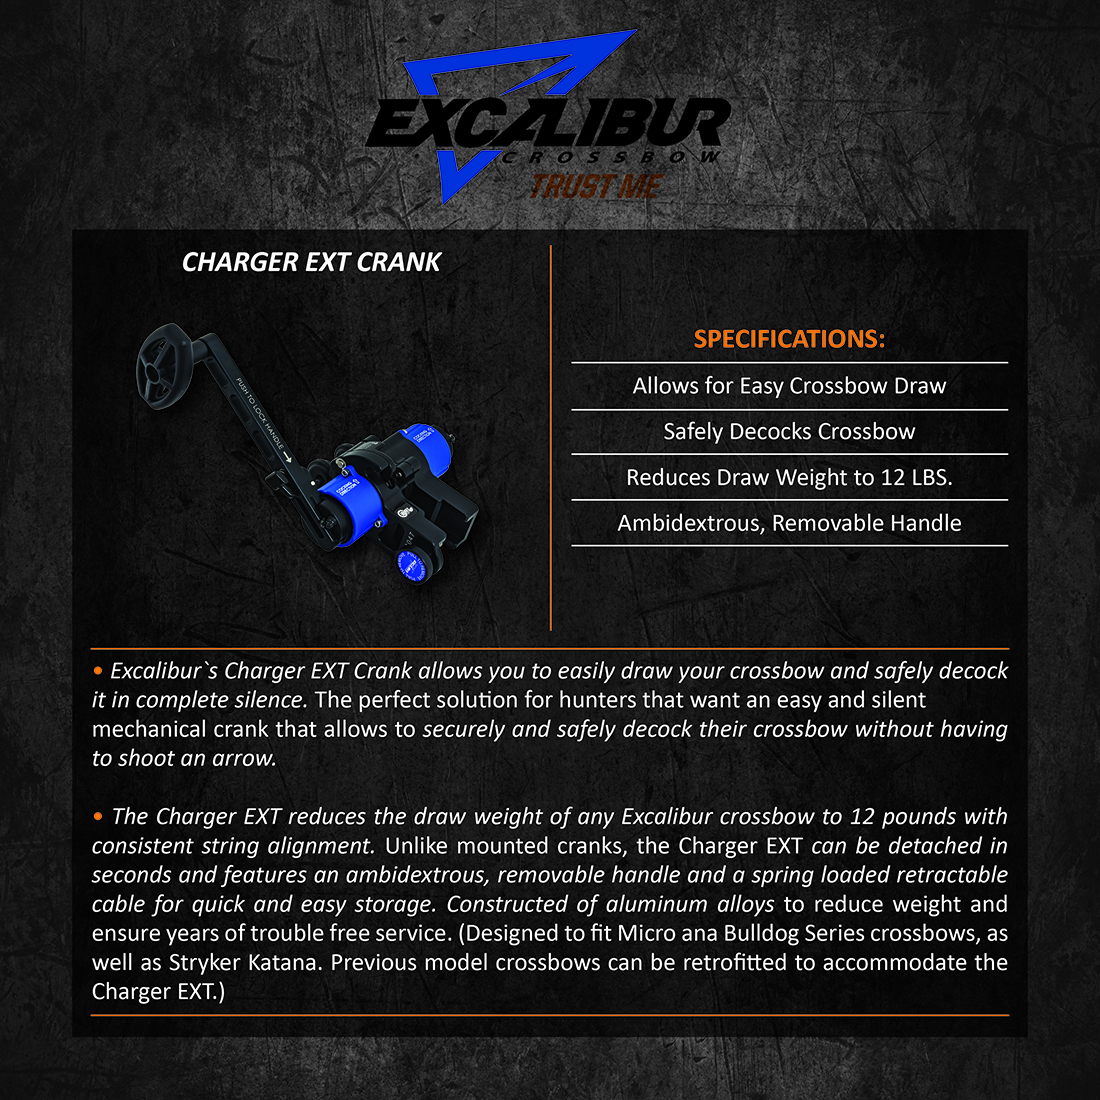 Excalibur_Charger_EXT_Crank_Product_Description